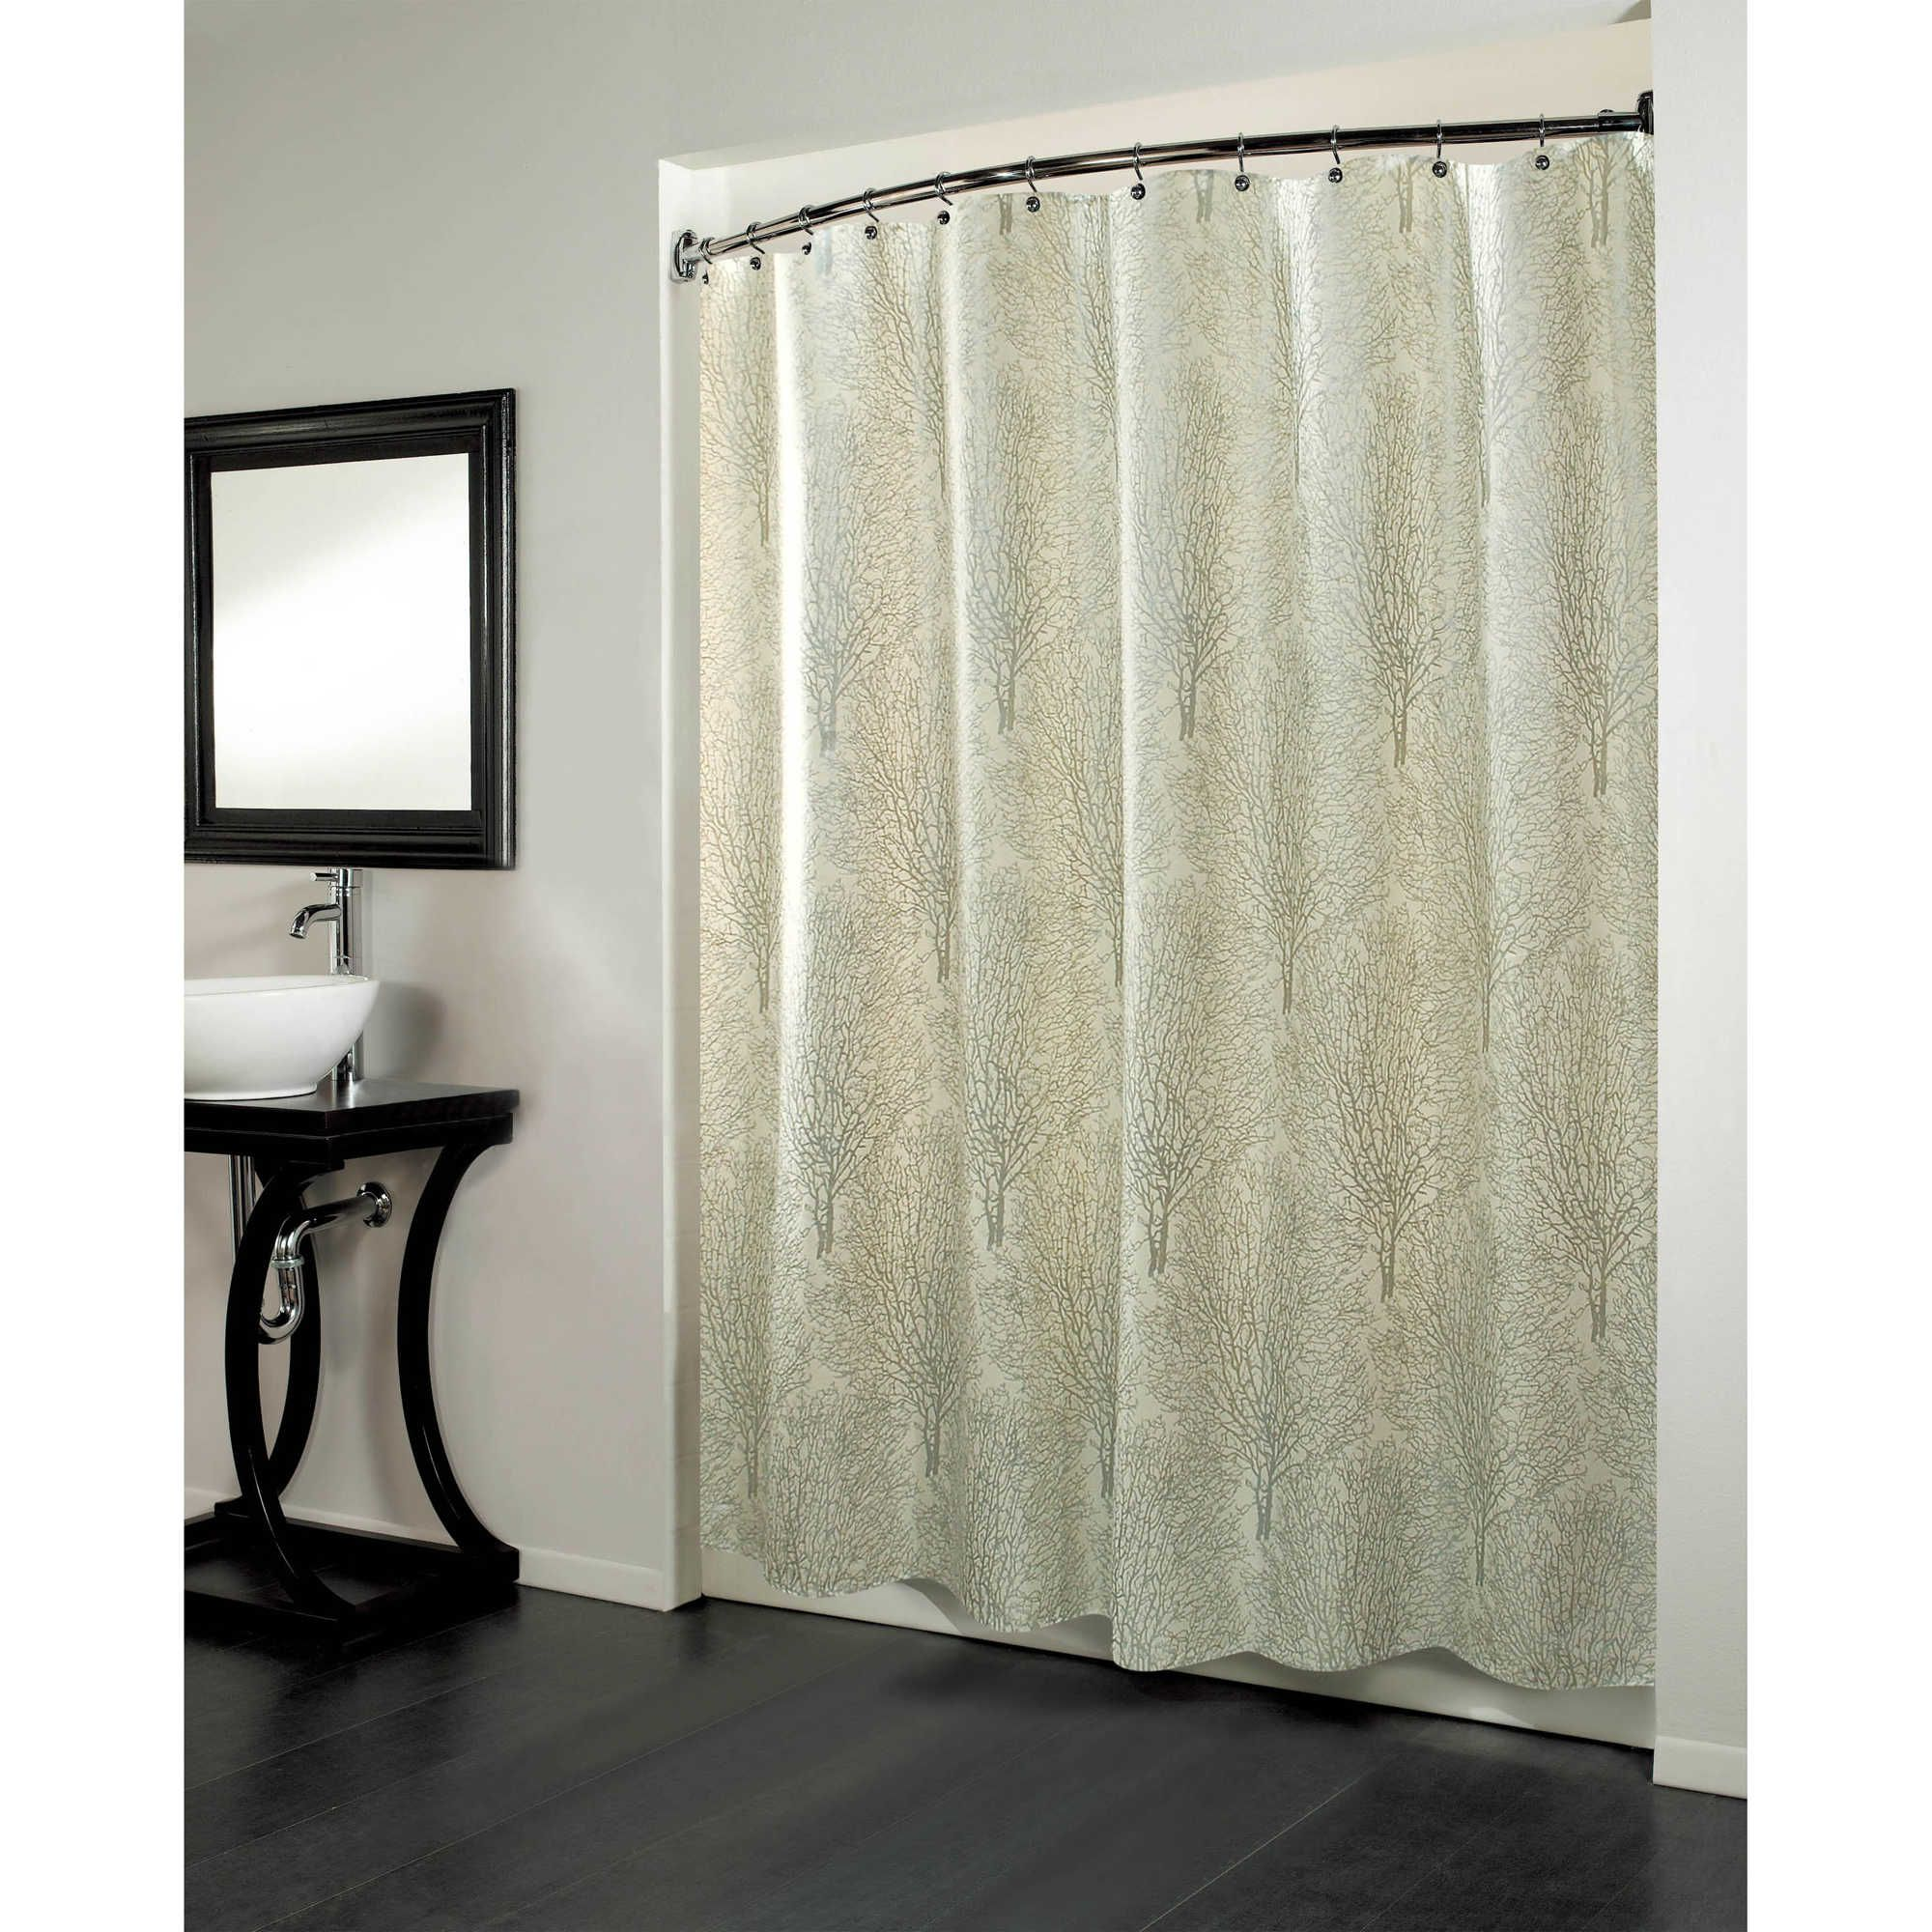 Forest inch x inch fabric metallic print shower curtain